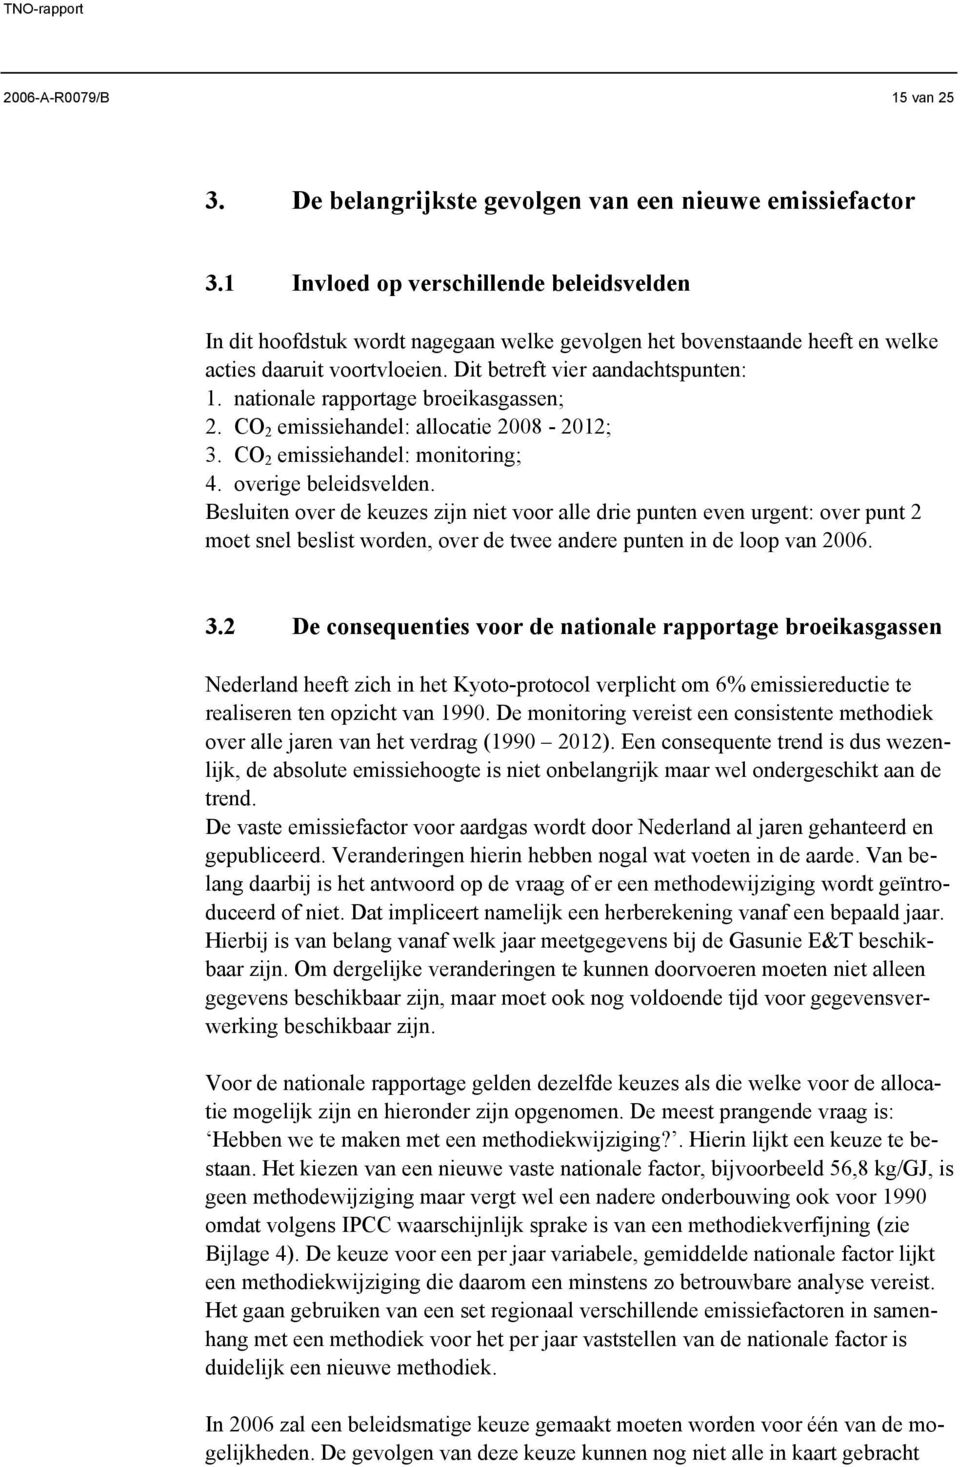 nationale rapportage broeikasgassen; 2. CO 2 emissiehandel: allocatie 2008-2012; 3. CO 2 emissiehandel: monitoring; 4. overige beleidsvelden.